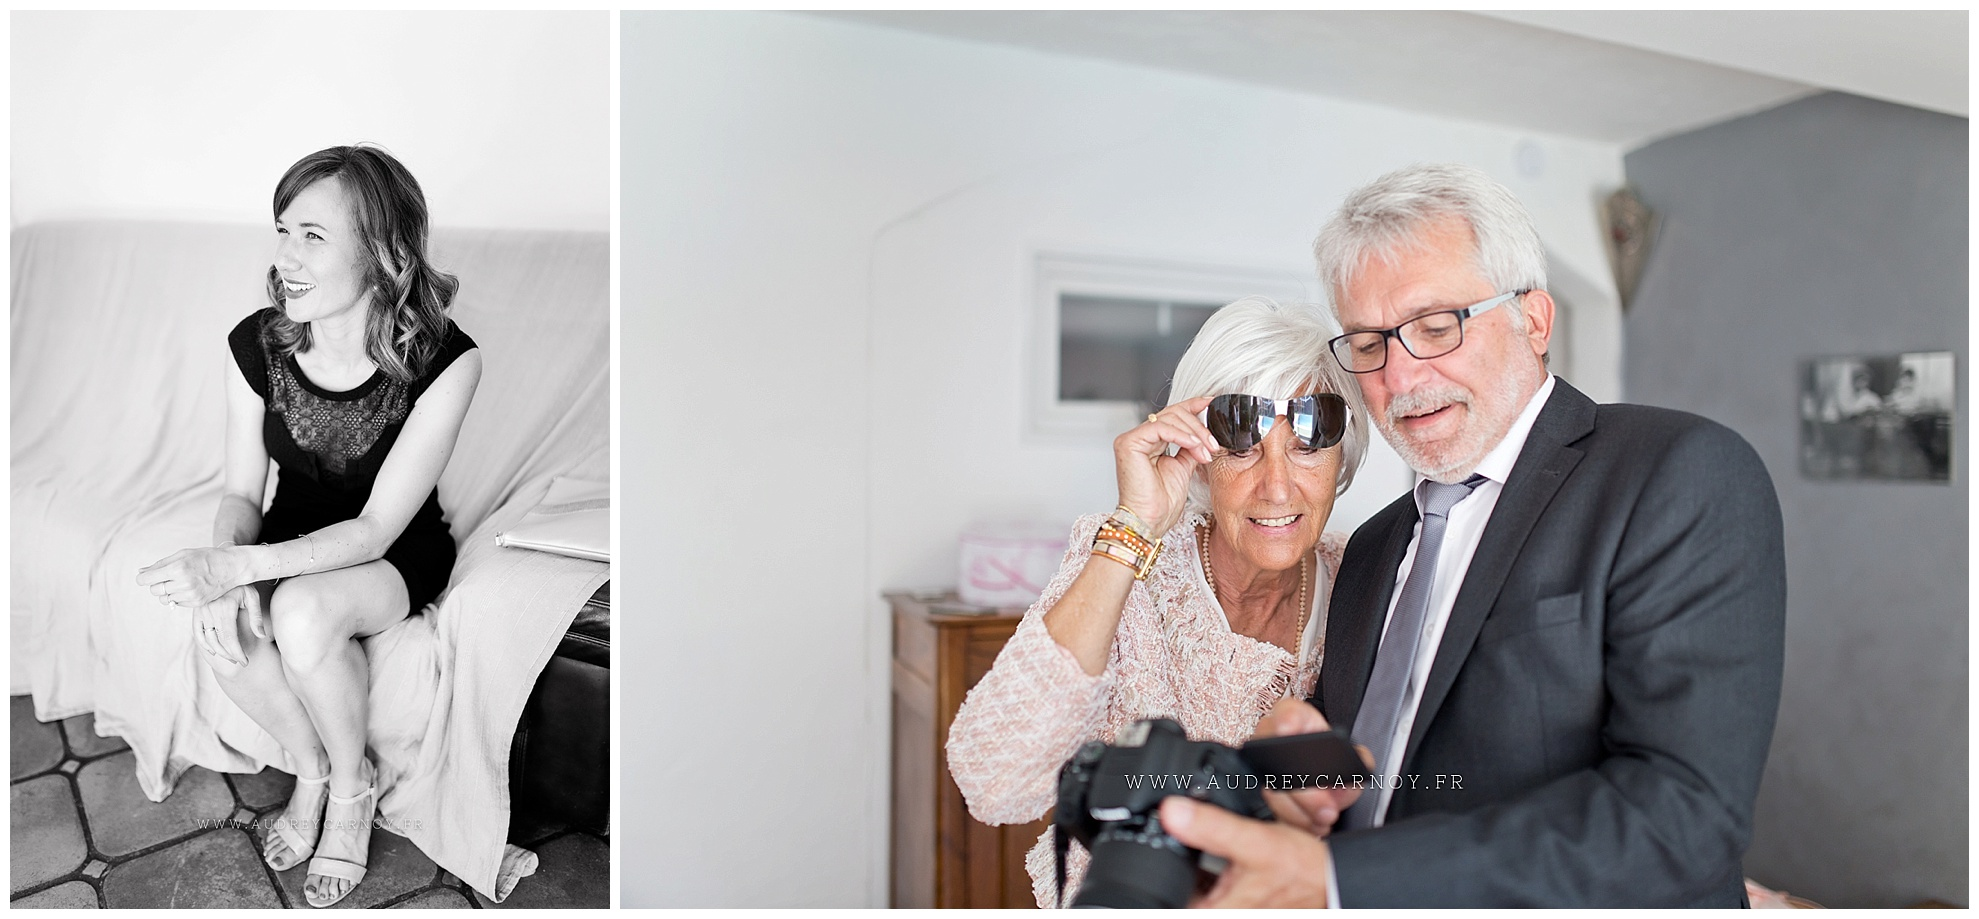 Mariage Pertuis | Laurence & Anthony 9